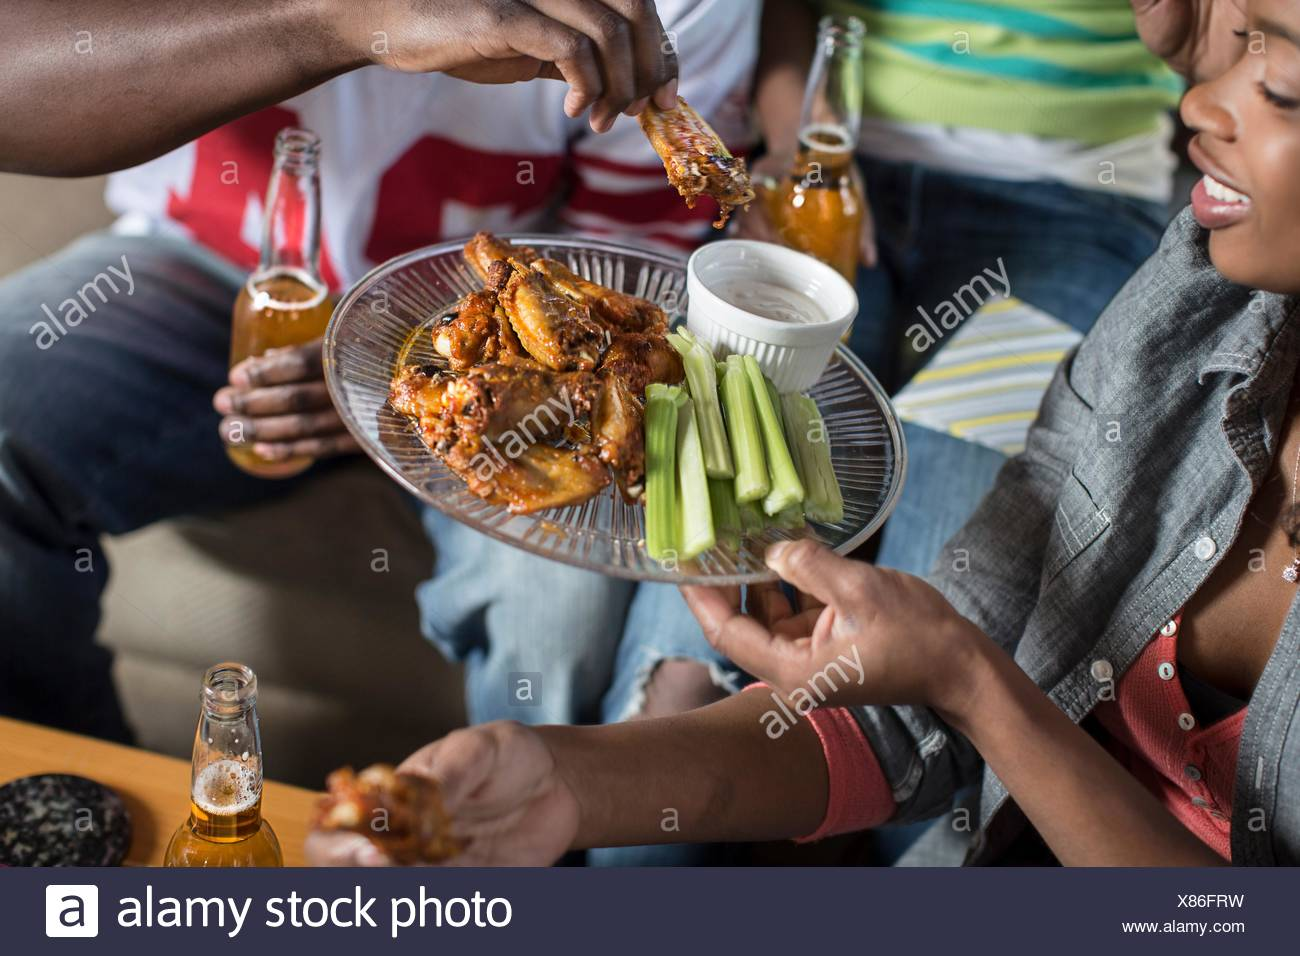 Group of adult friends sharing takeaway on living room sofa - Stock Image